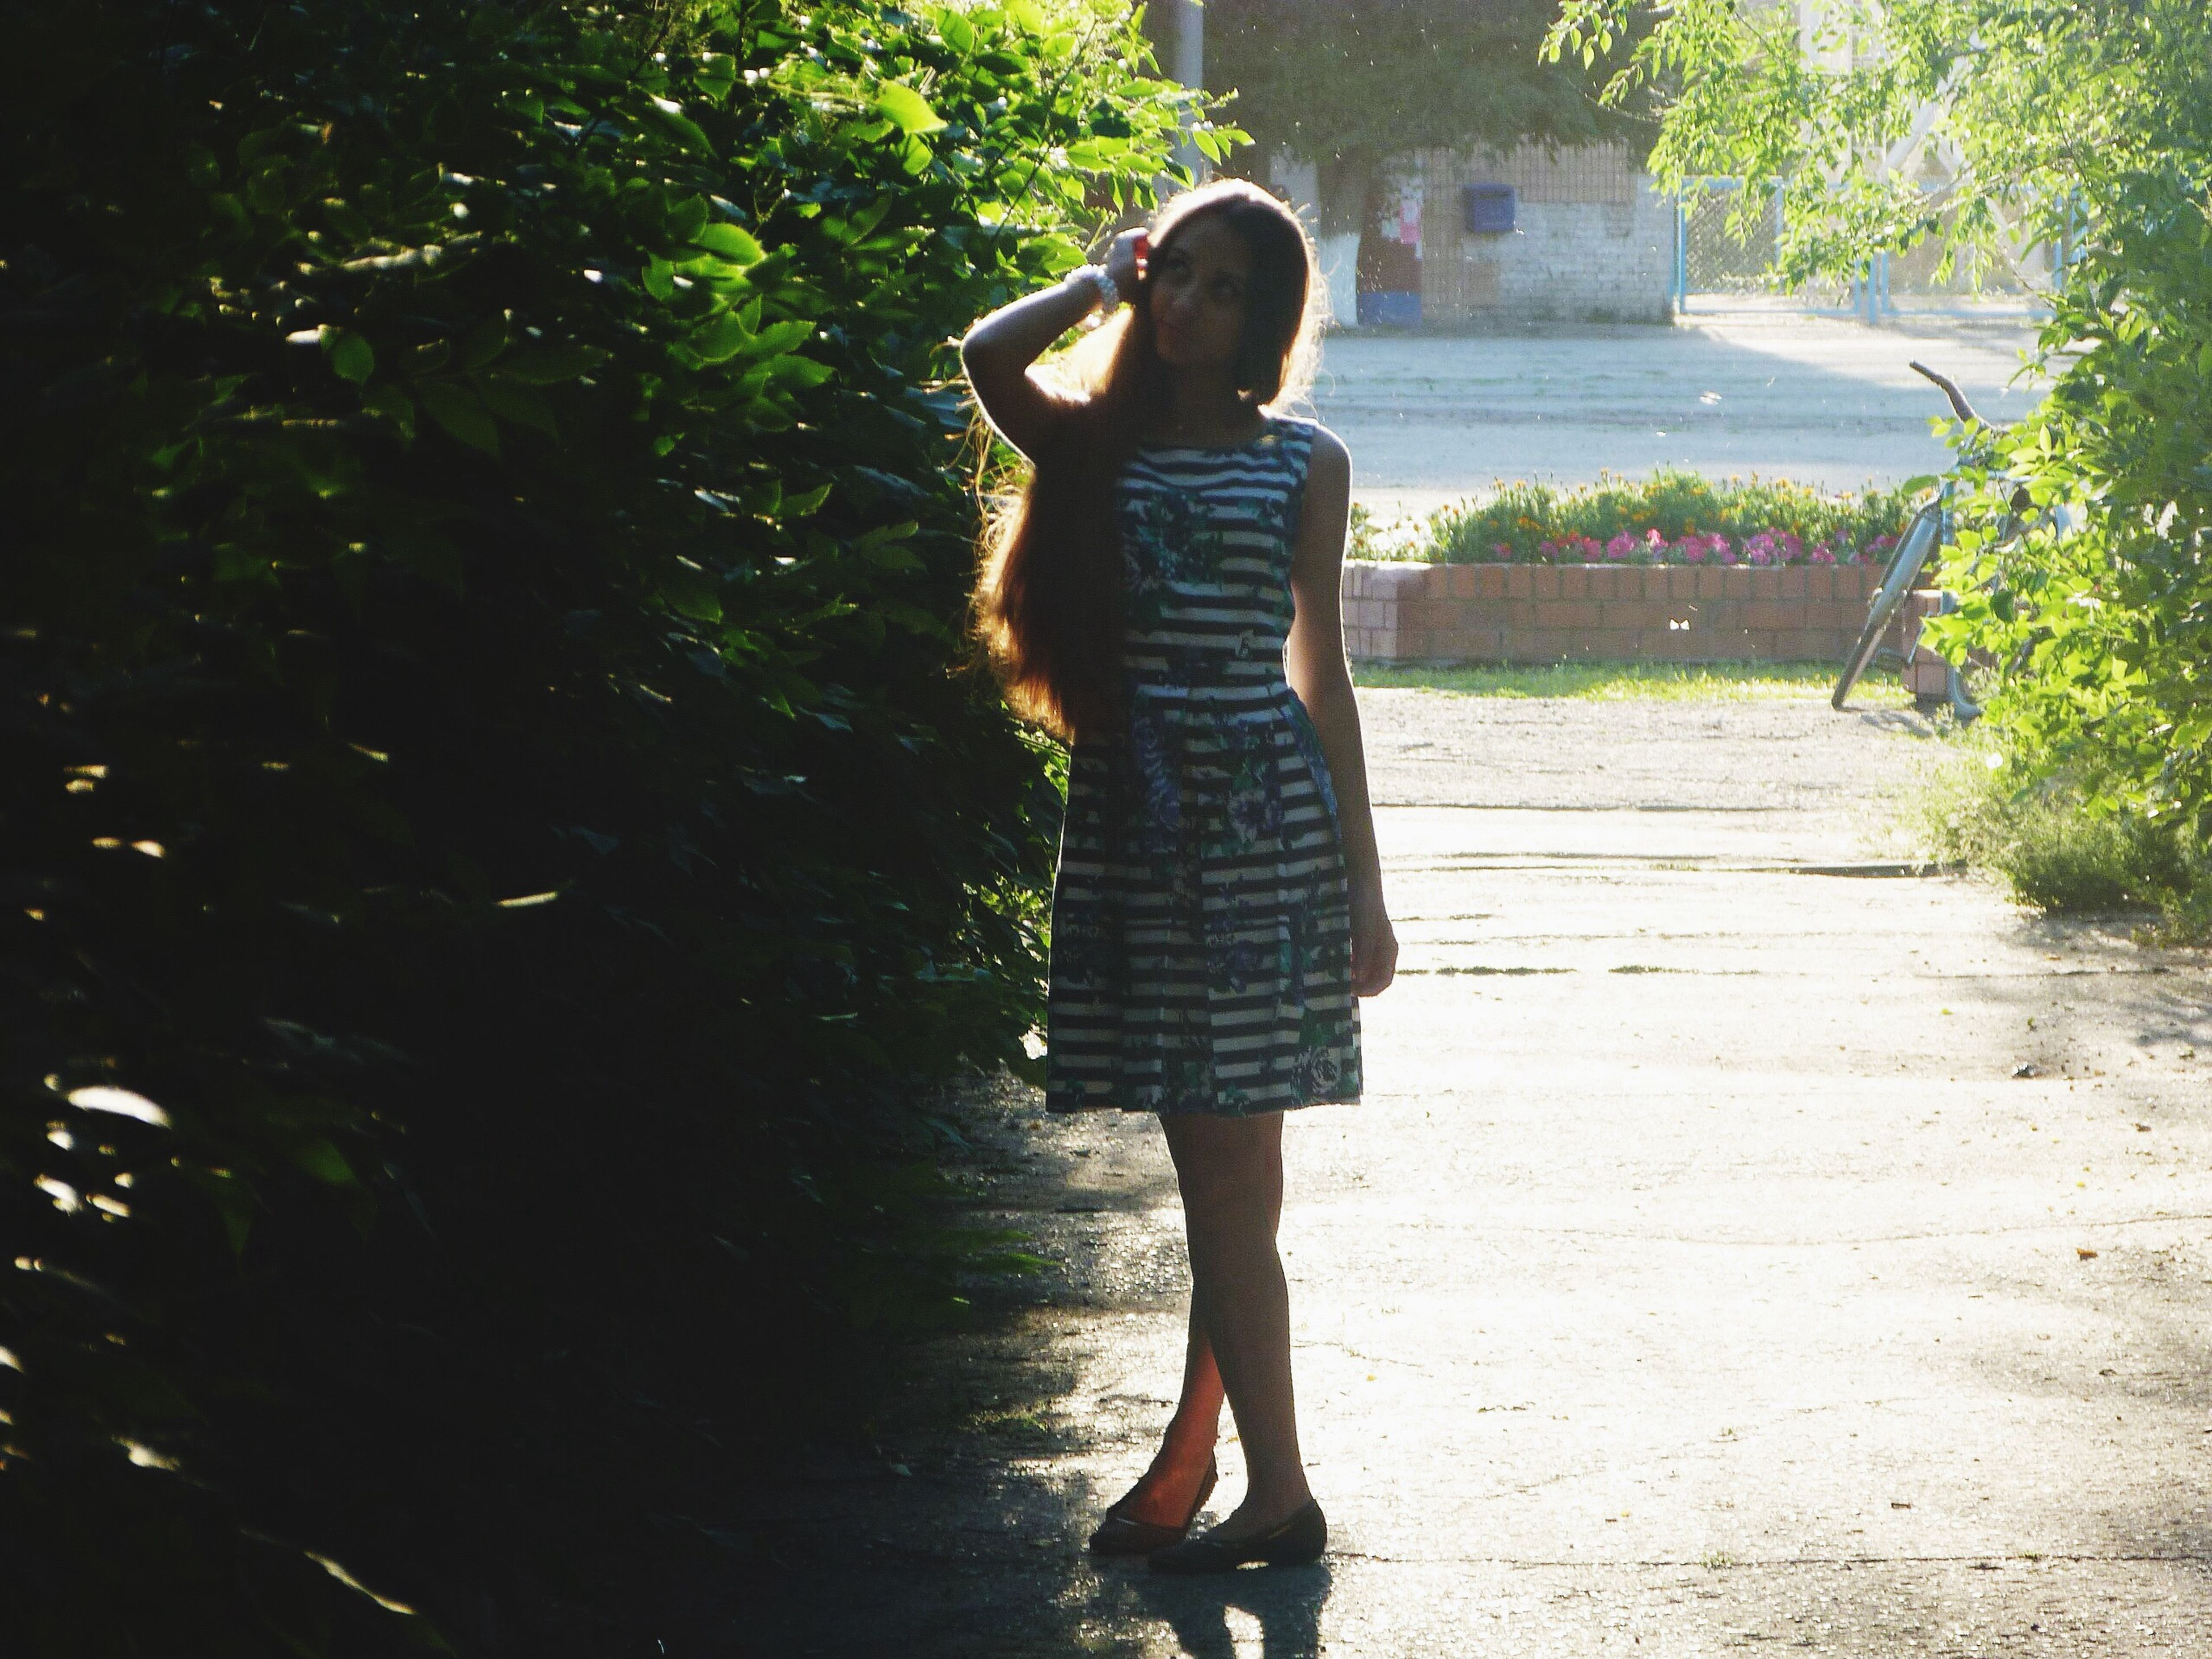 full length, casual clothing, lifestyles, leisure activity, standing, tree, person, rear view, young adult, sunlight, front view, young women, childhood, three quarter length, walking, outdoors, day, park - man made space